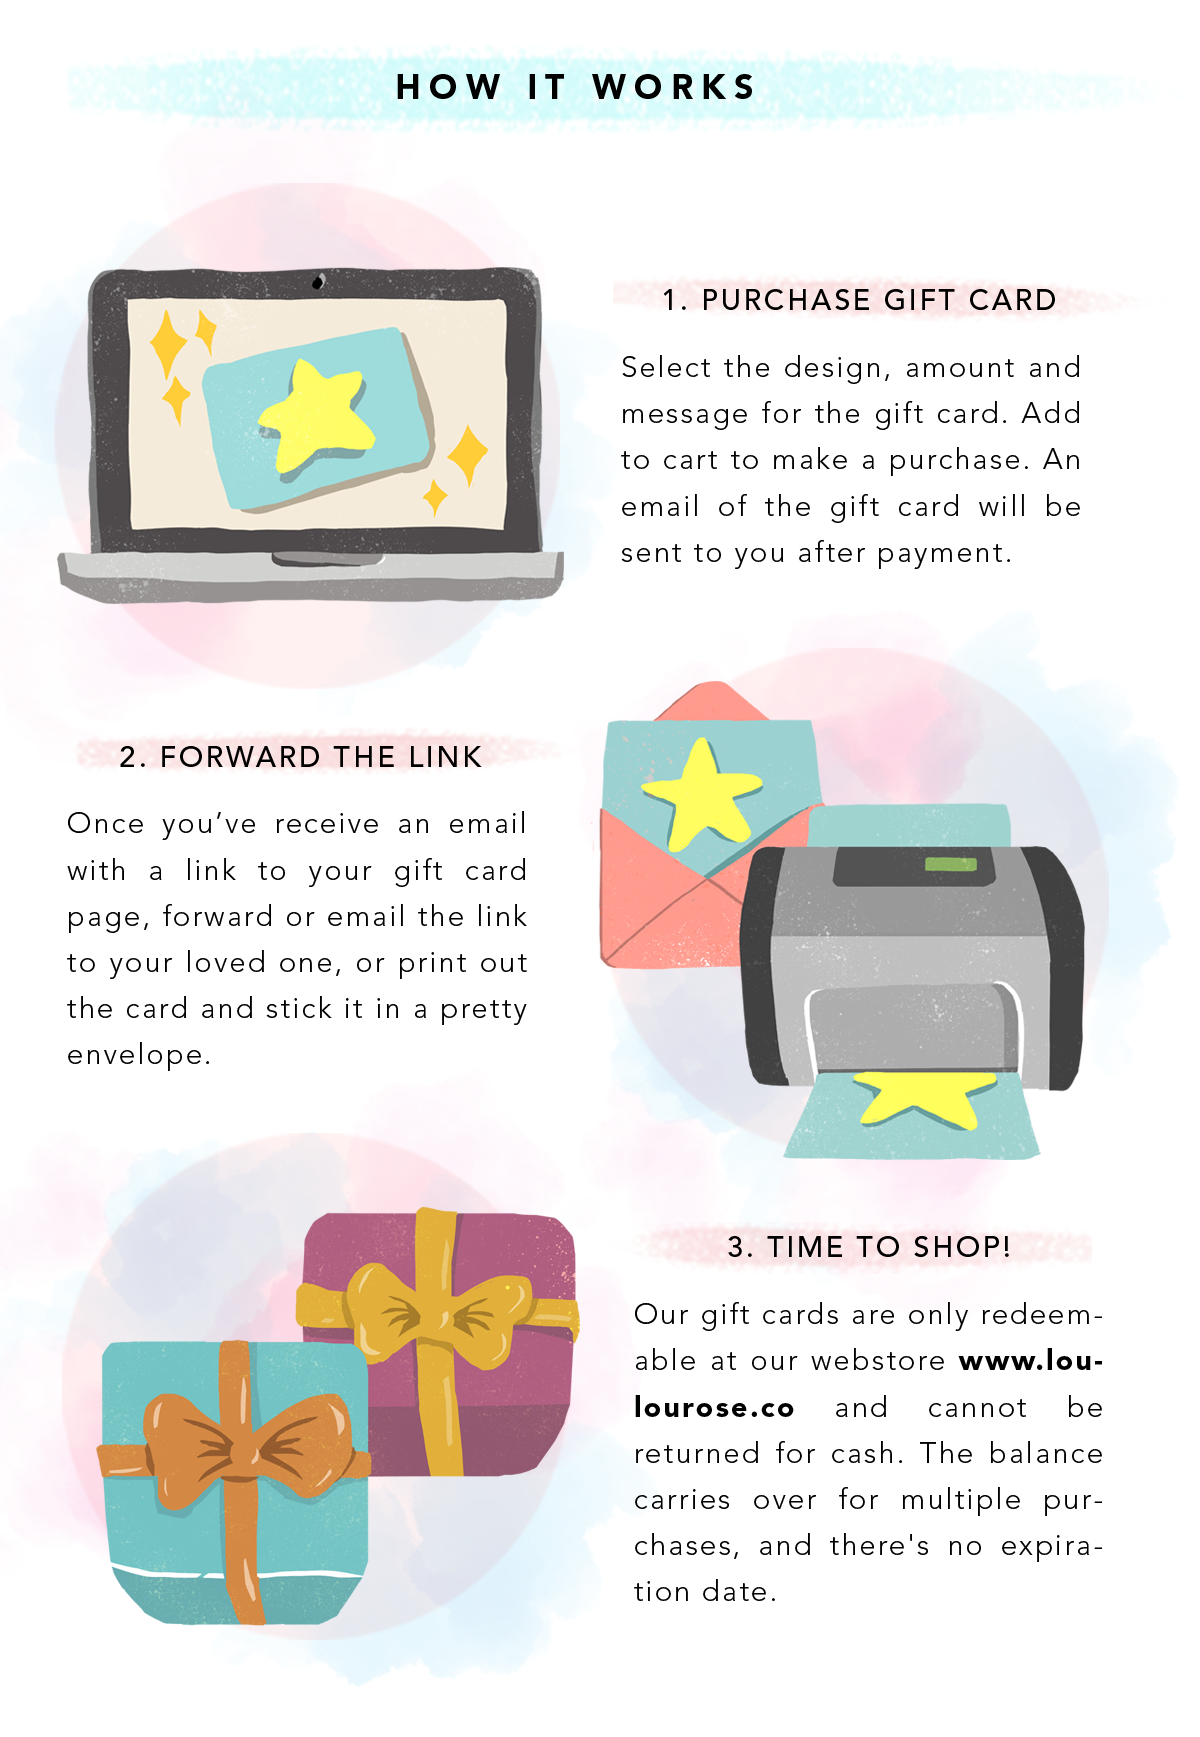 Giftcards: how it works